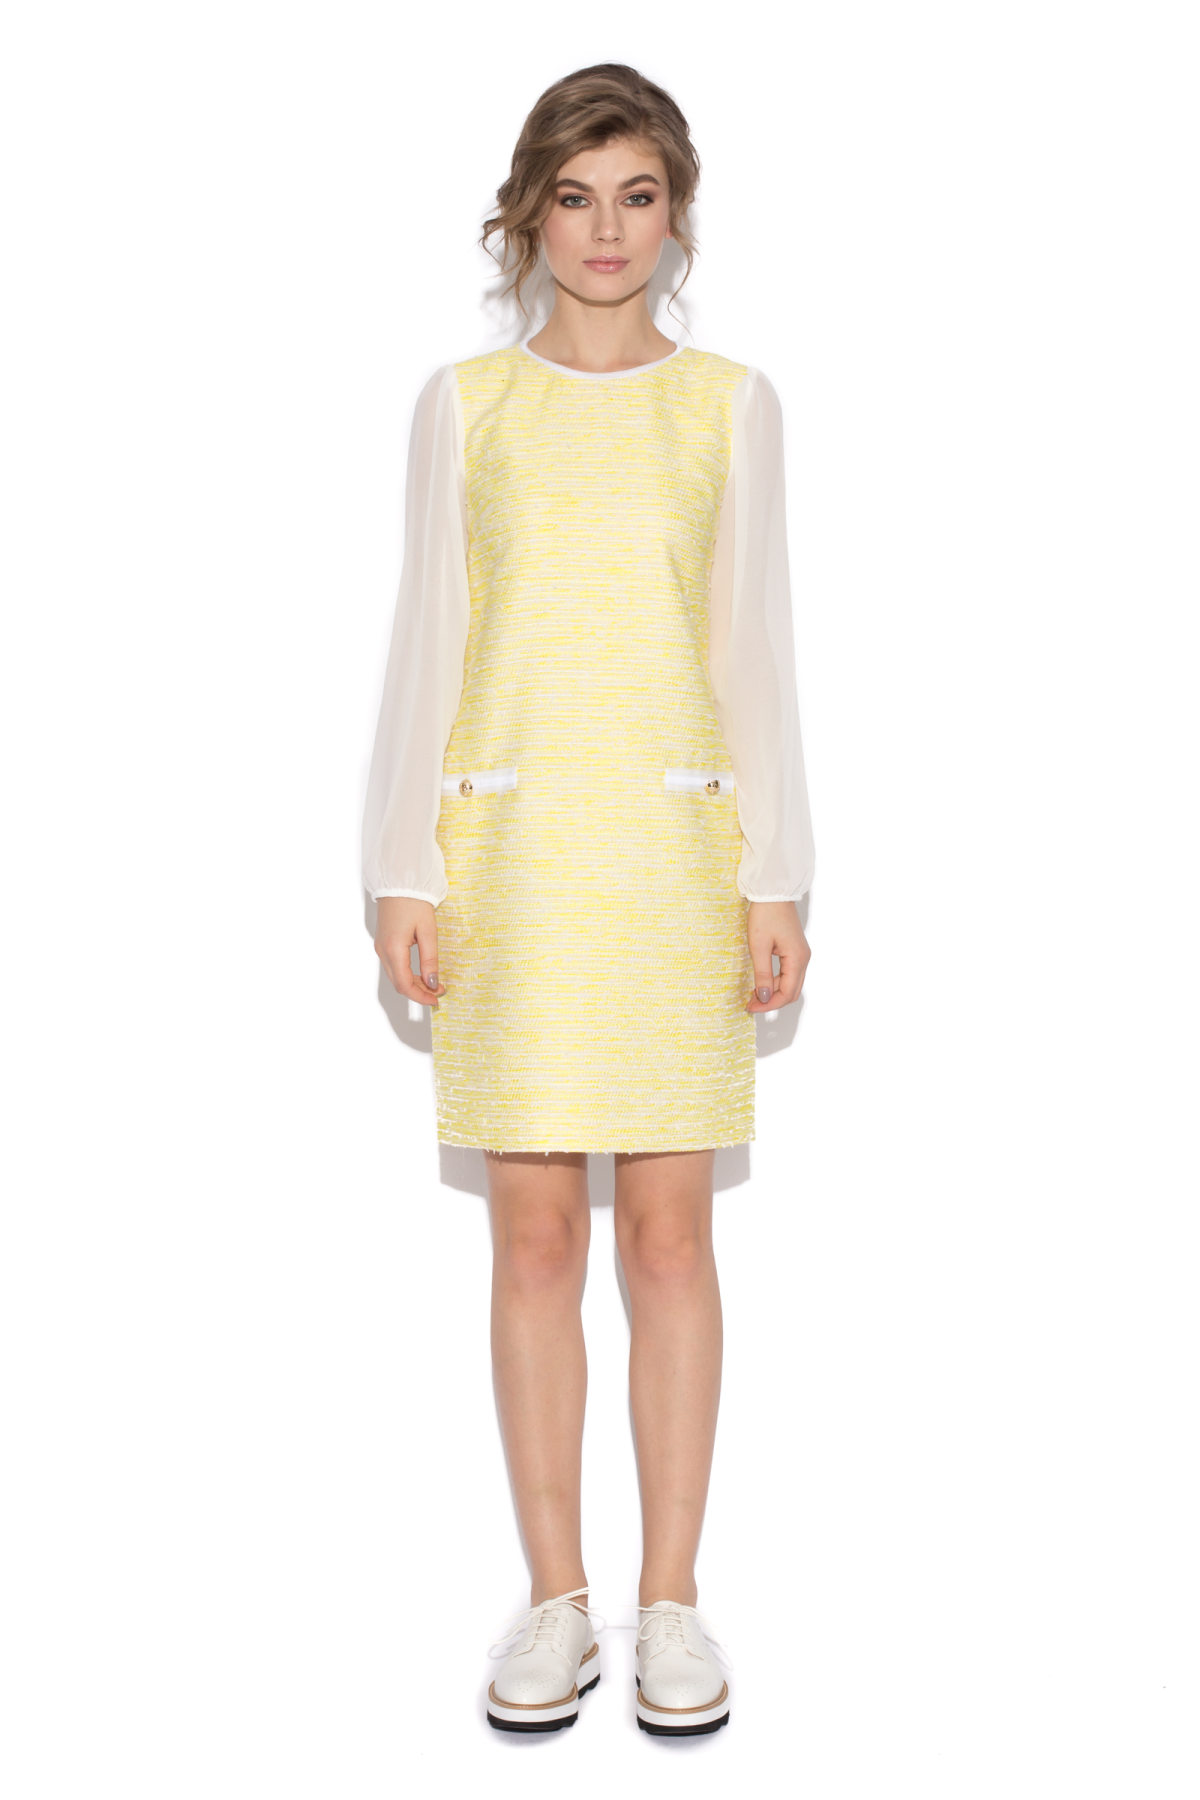 office dress with semiopaque sleeves